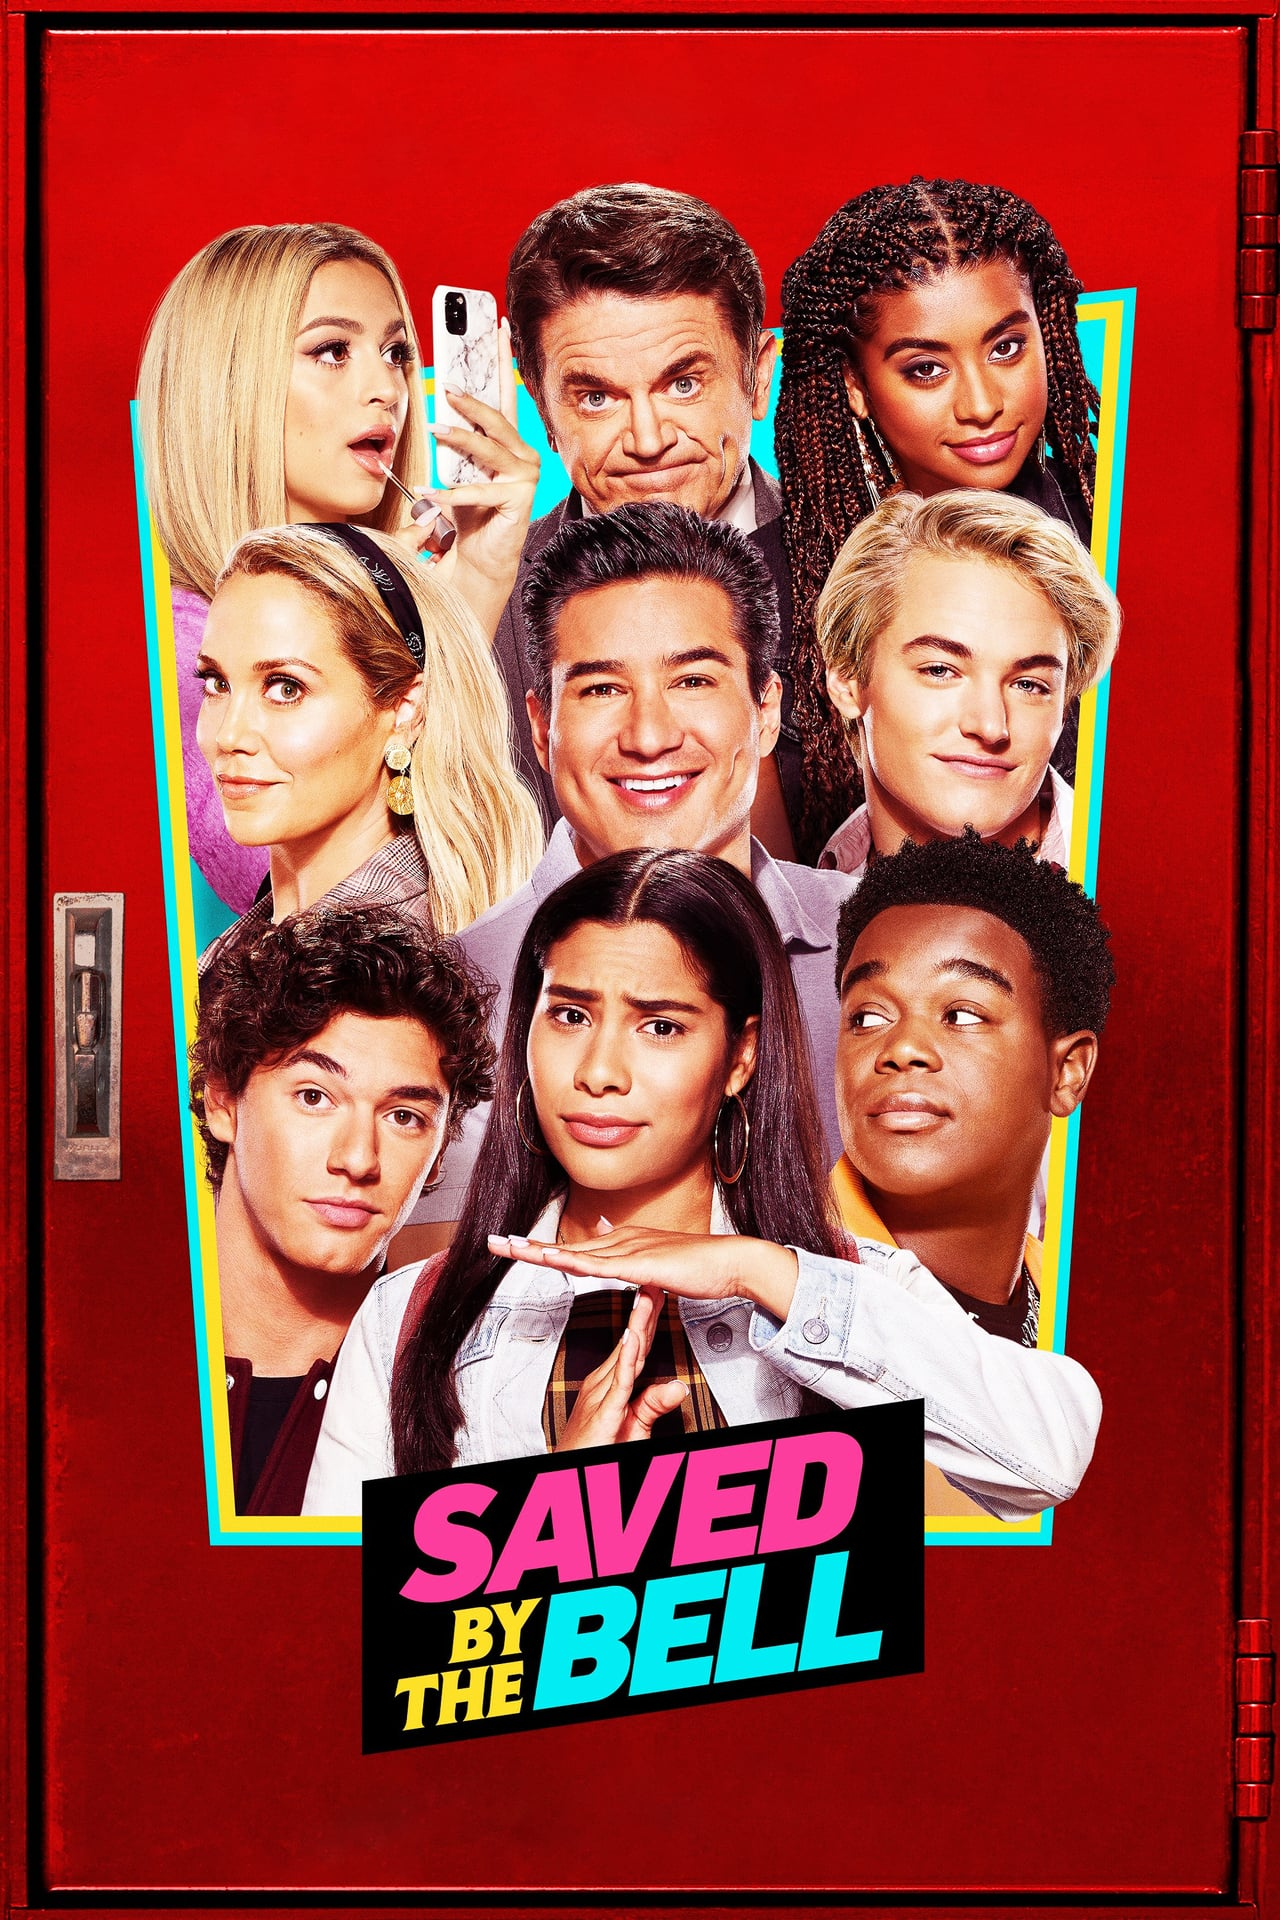 Saved by the Bell (season 2)